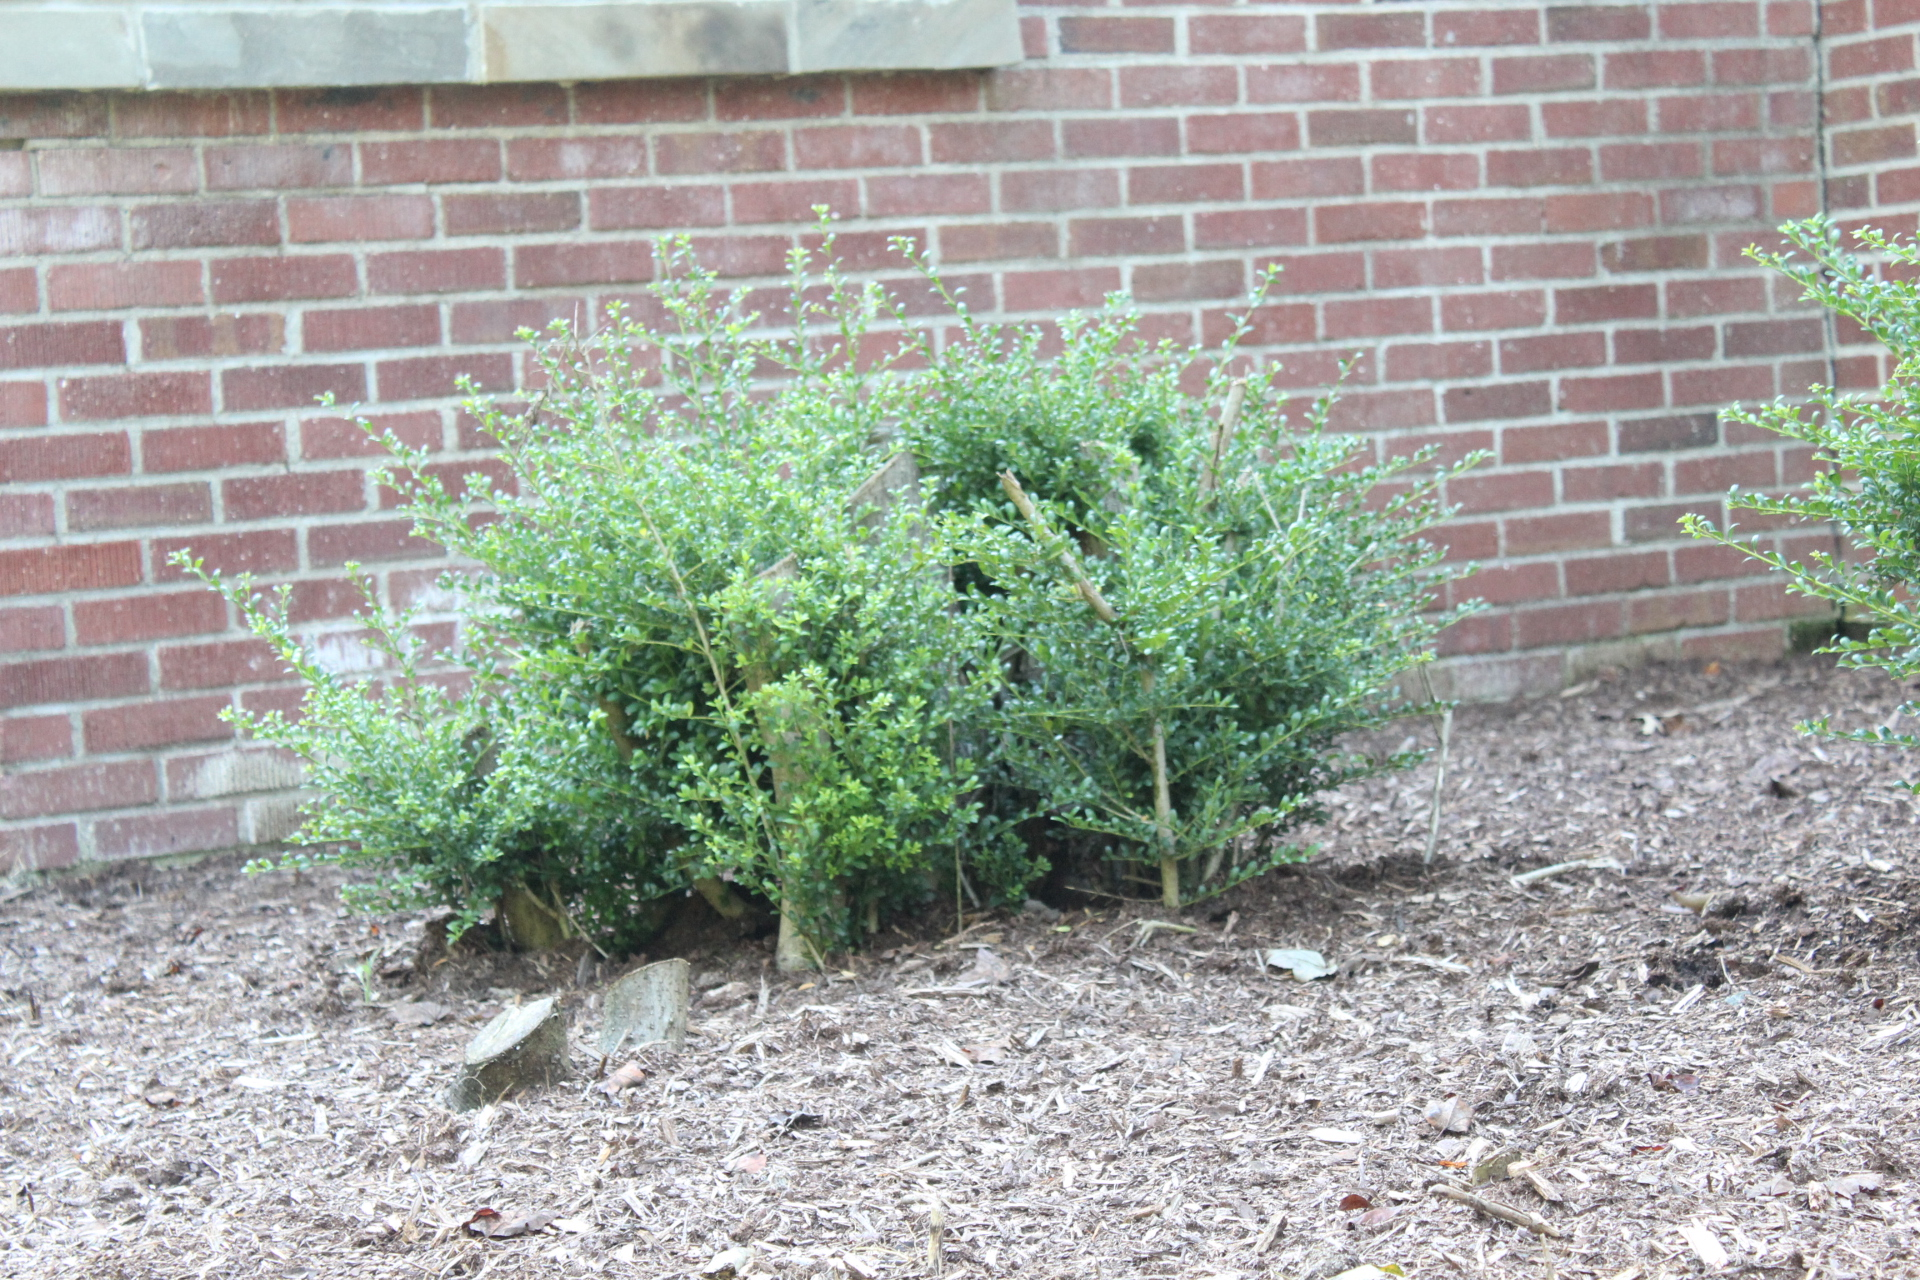 """By late August, the holly is 18"""" tall and growing. This type of pruning reinvigorates shrubs that are old, overgrown or sheared so many times the interior of the shrub is primarily dead twigs. It is a cost effective way to clean up the landscape. Not all shrubs respond to this kind of drastic pruning."""